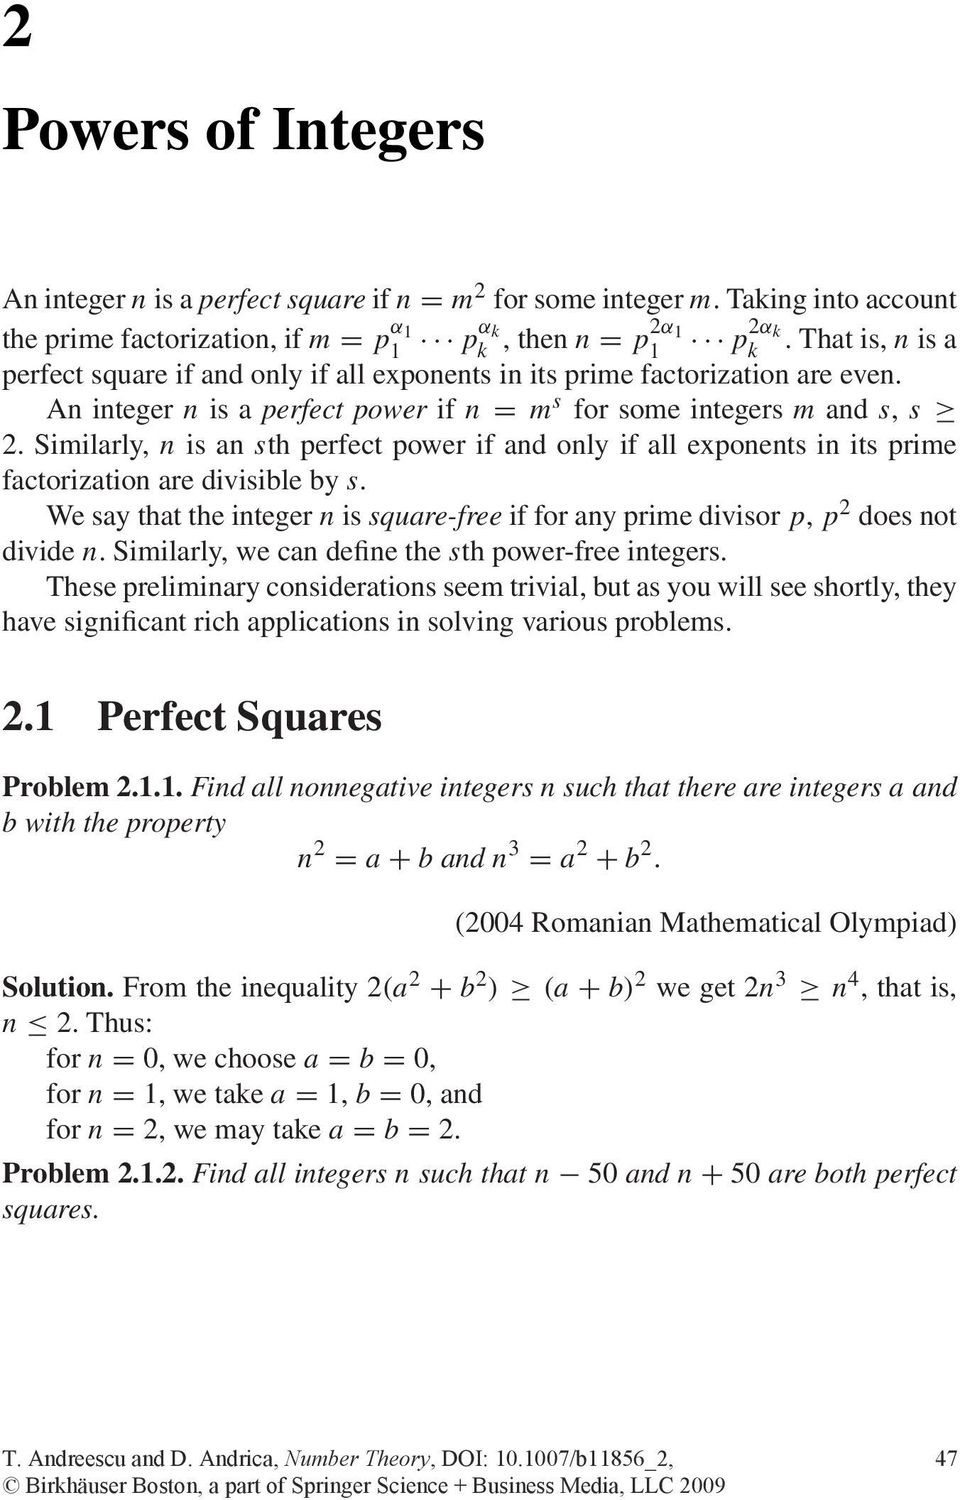 Similarly, n is an sth perfect power if and only if all exponents in its prime factorization are divisible by s.